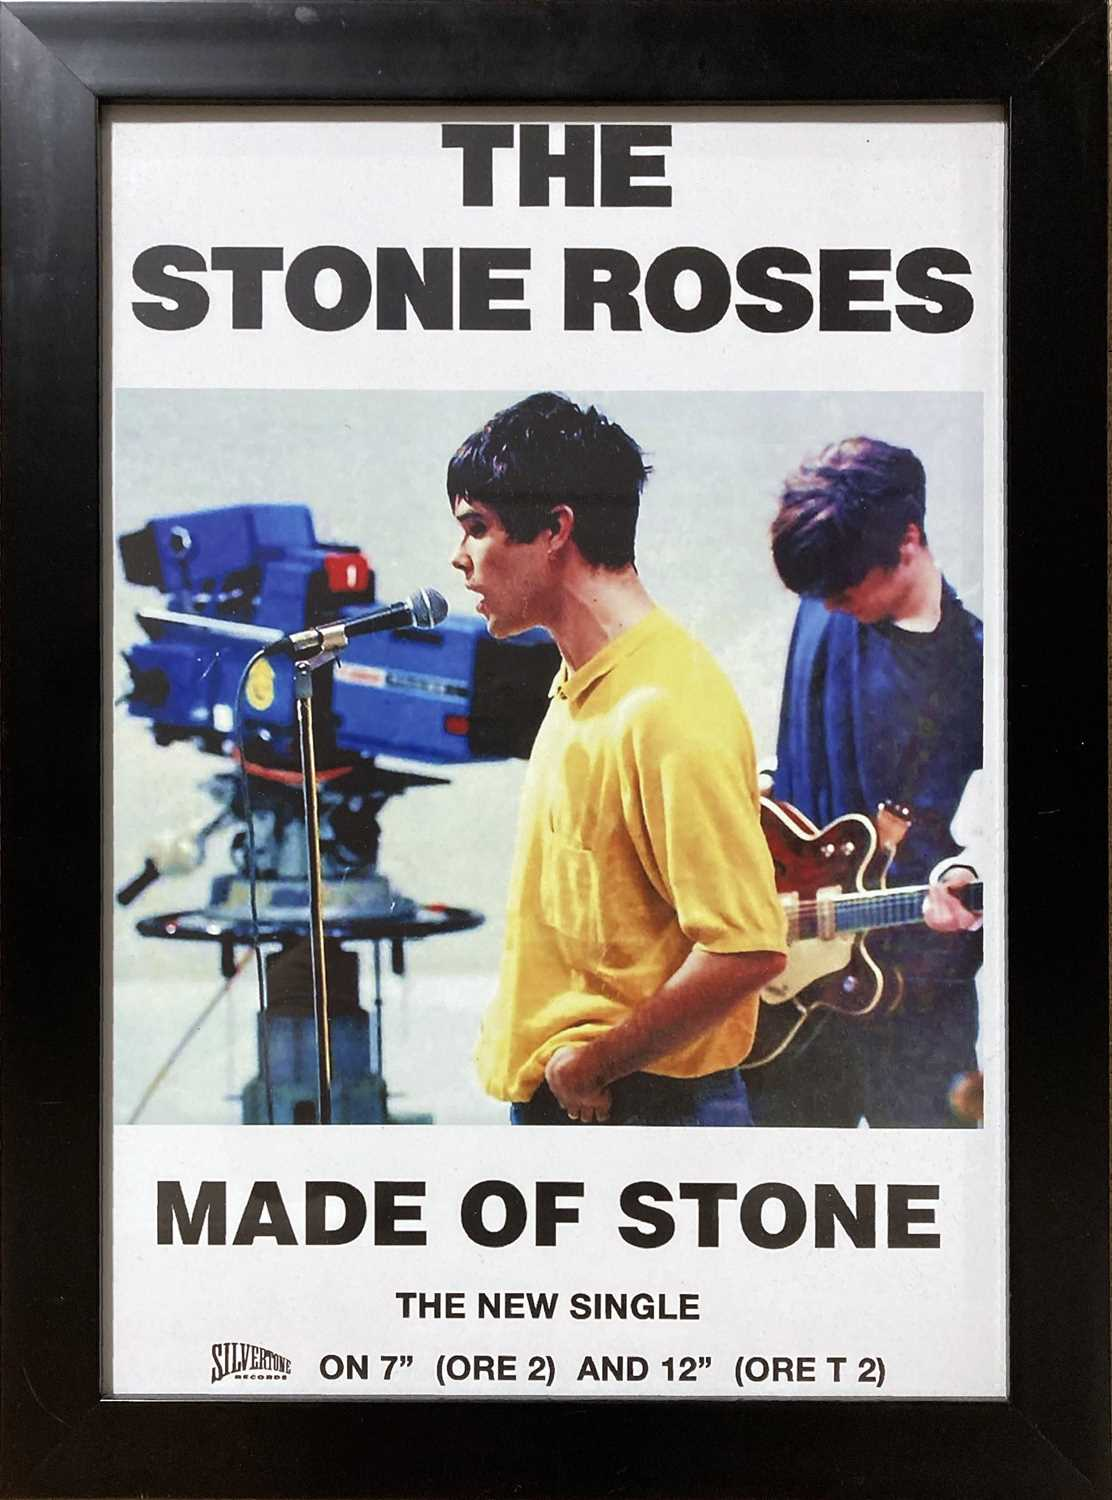 STONE ROSES / BLACK GRAPE POSTERS. - Image 4 of 5